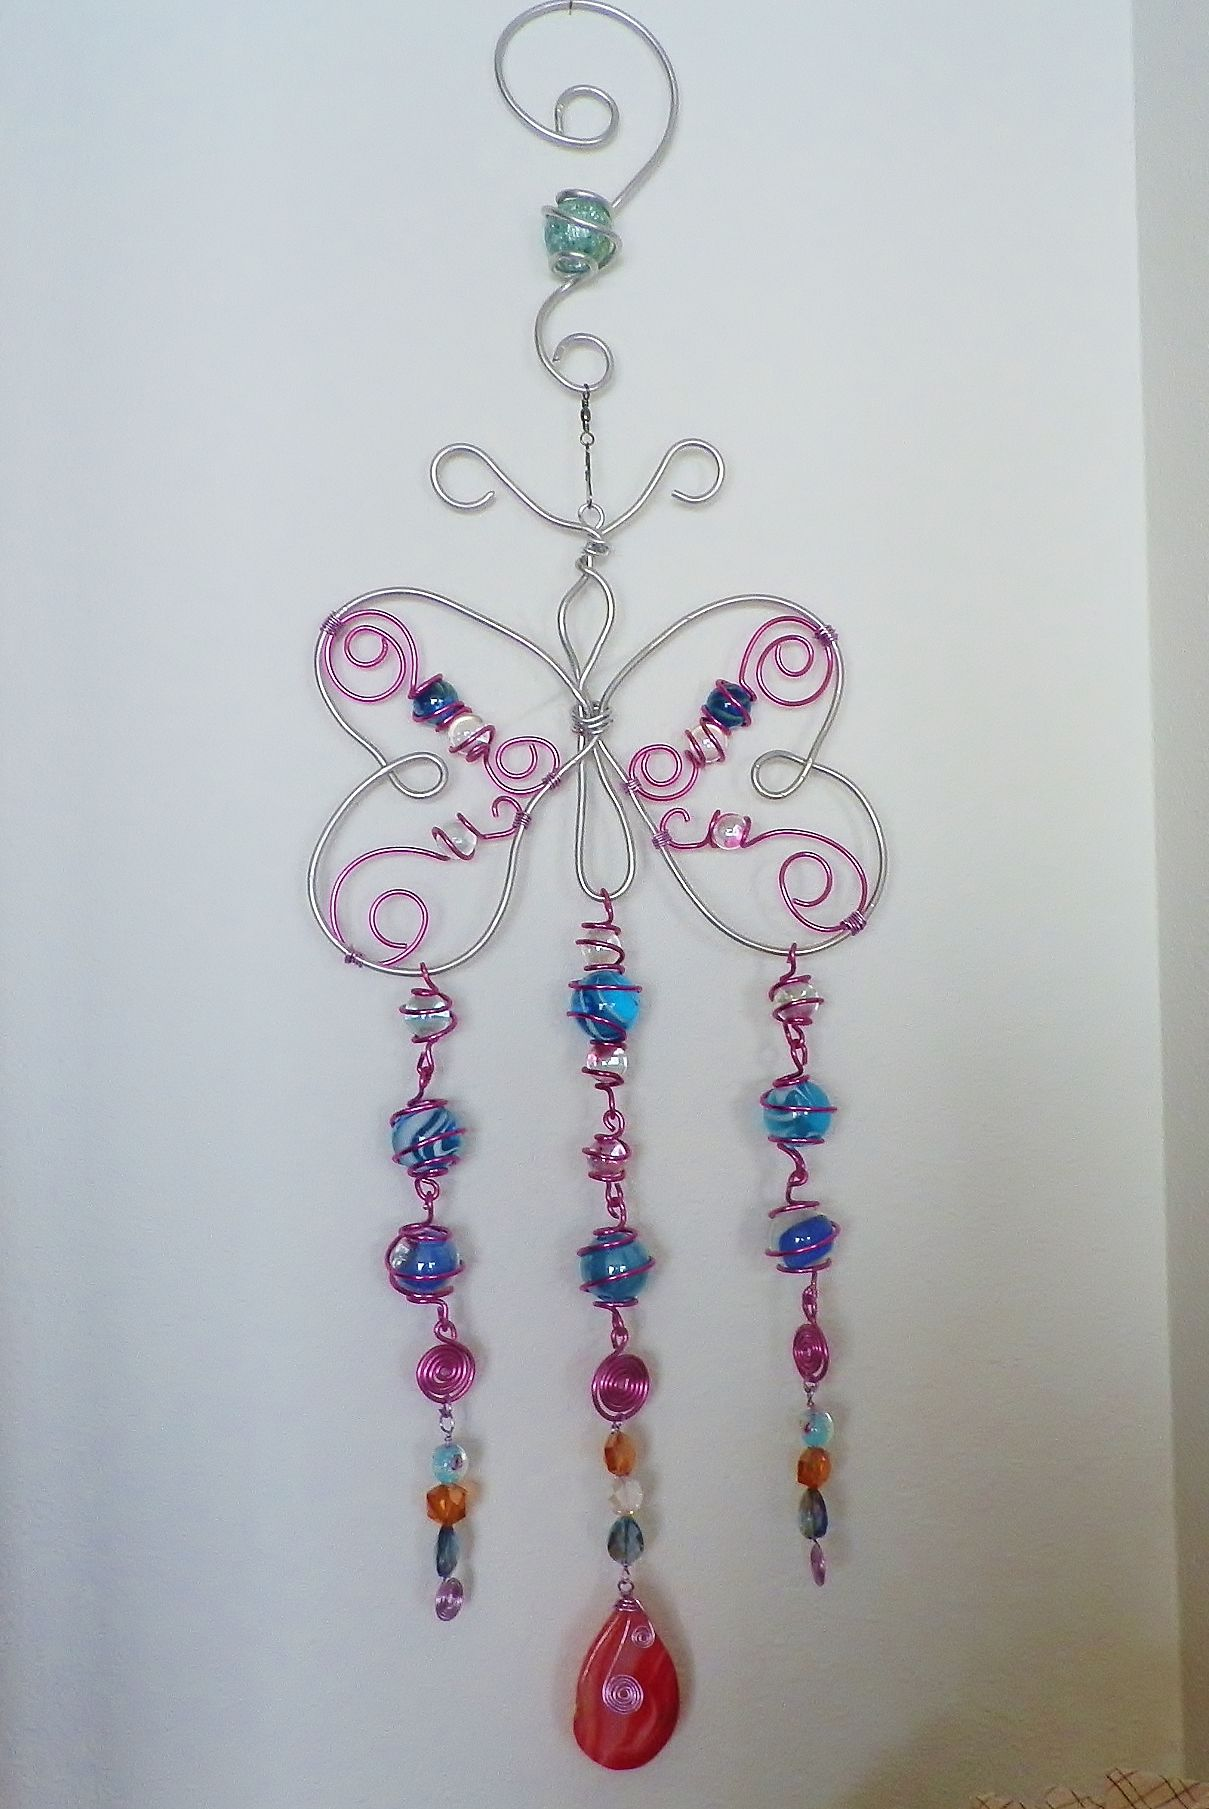 Wind chime; sun catcher; wire wrapped marbles and beads garden art ...